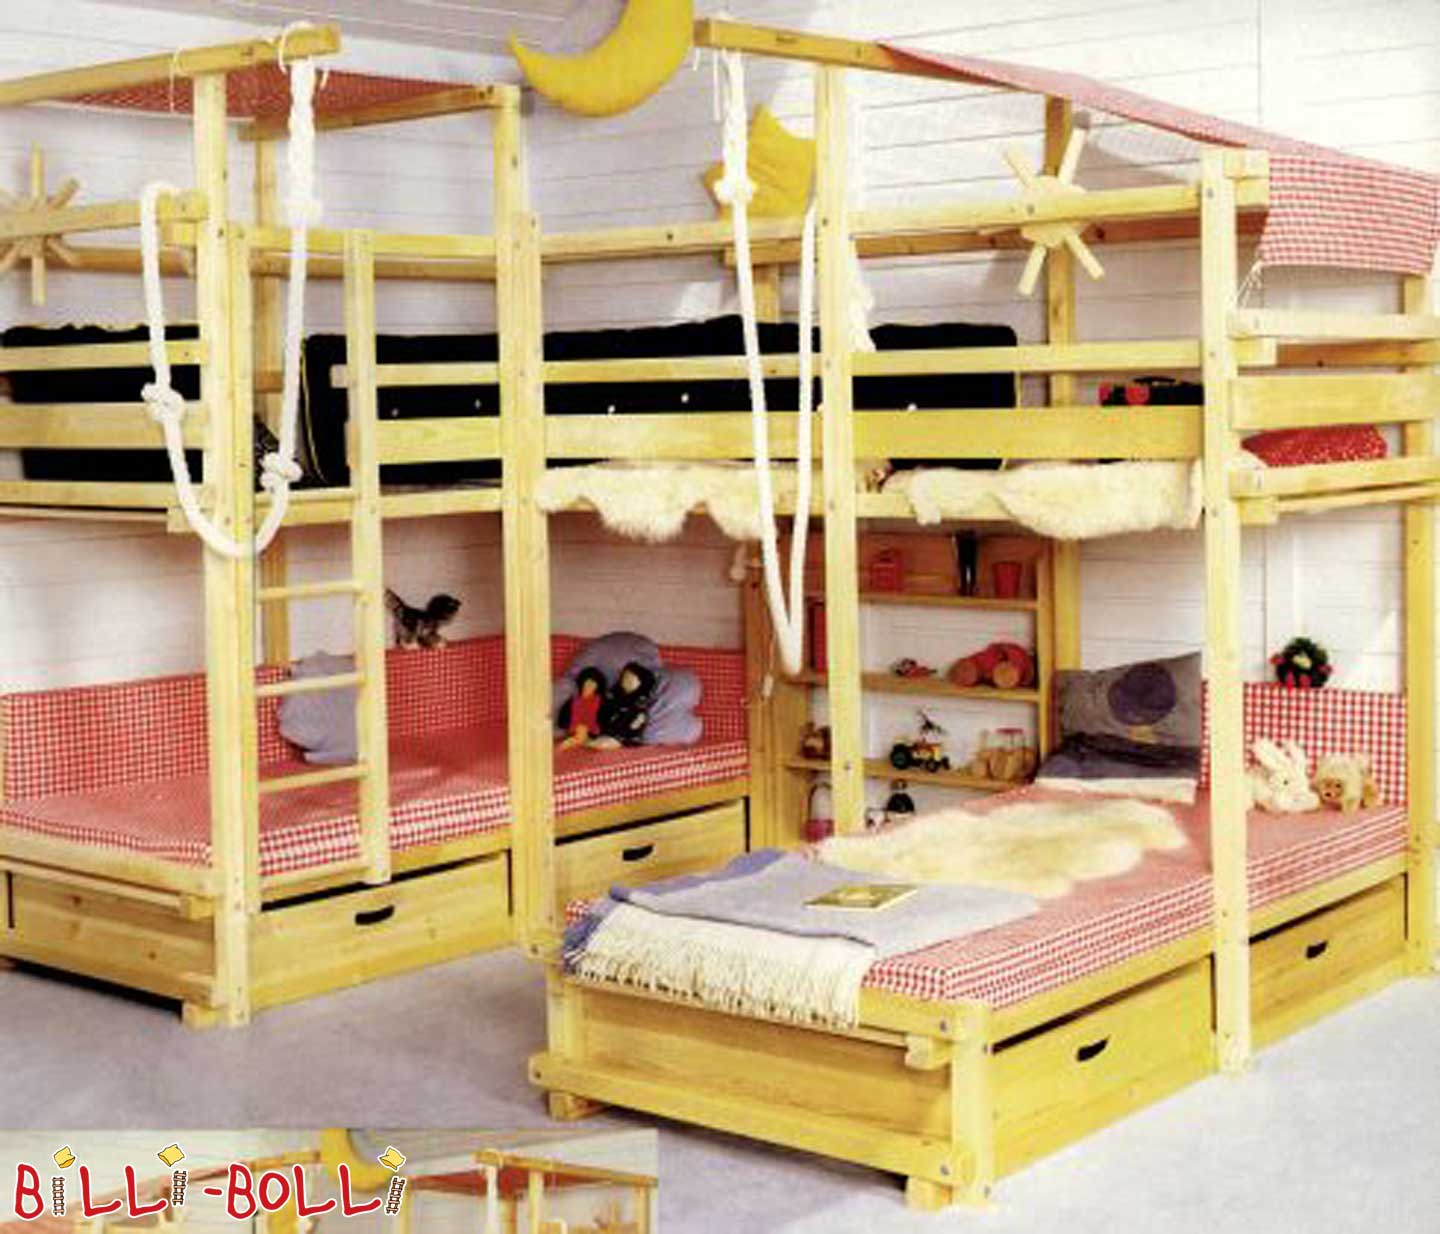 "Gullibo Adventure Bed "" Gulliburg"" (second hand adventure bed)"